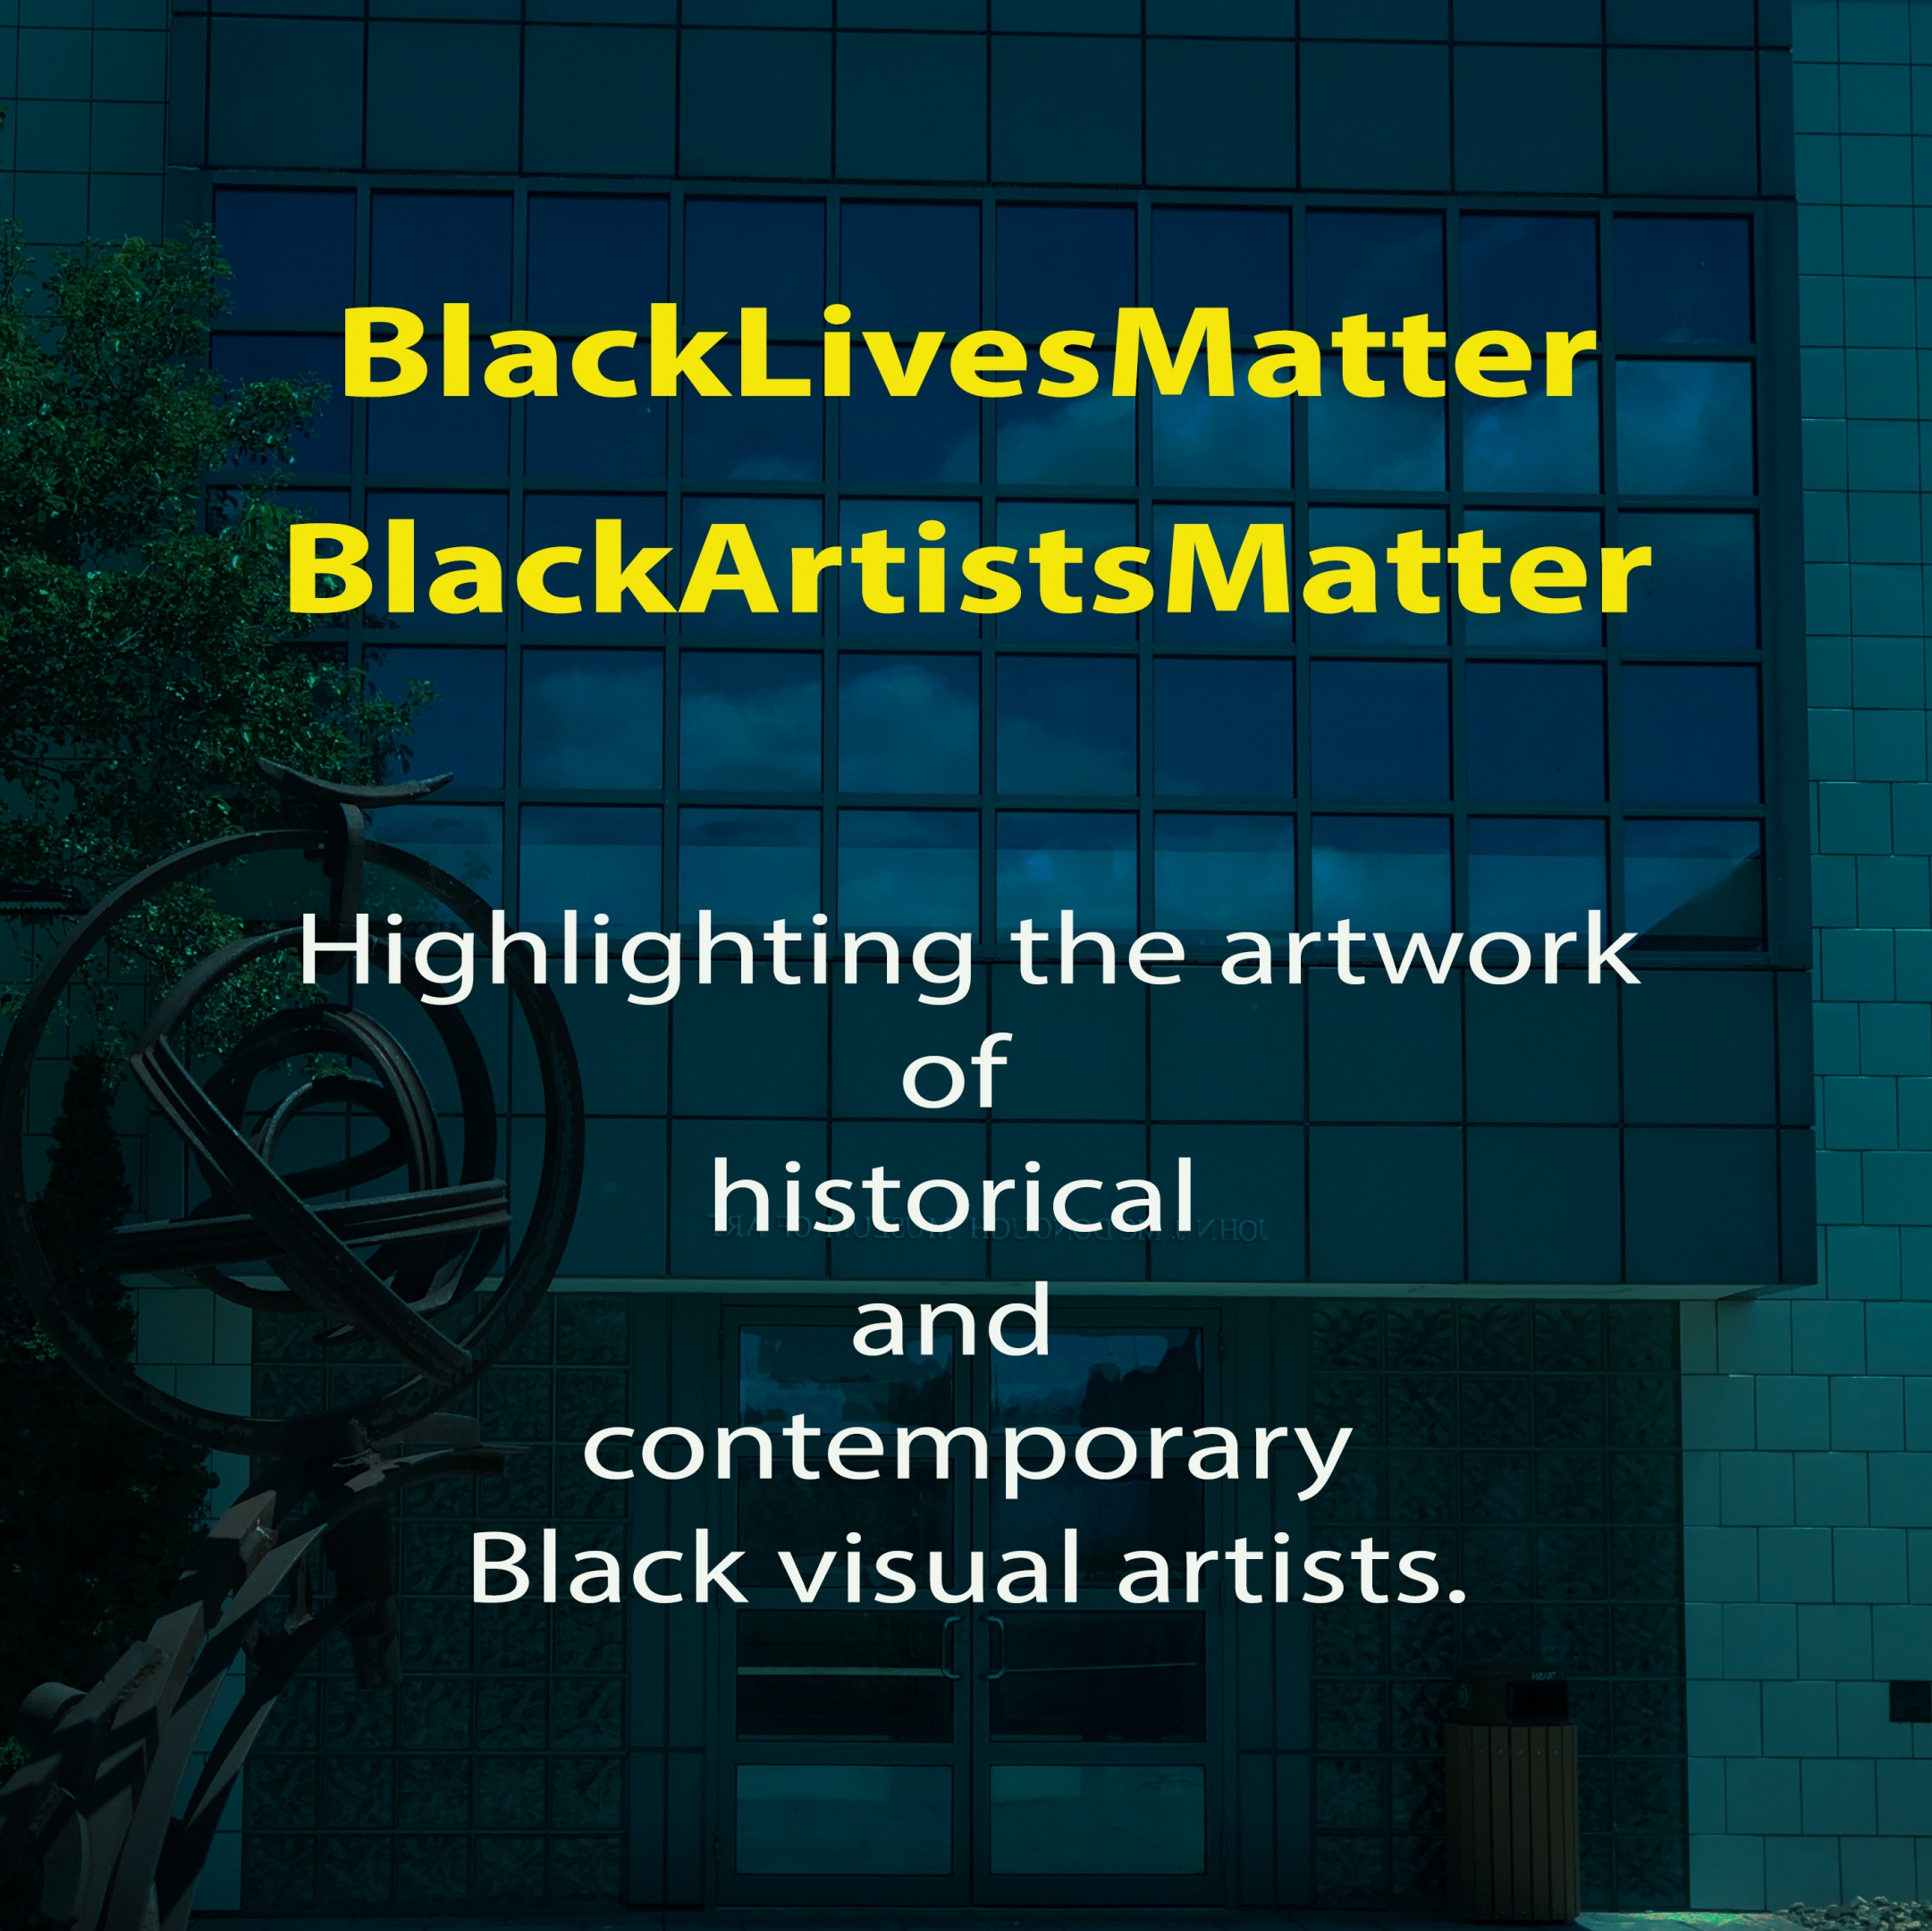 Black Artists Matter.Highlighting the artwork of historical and contemporary Black visual artists.